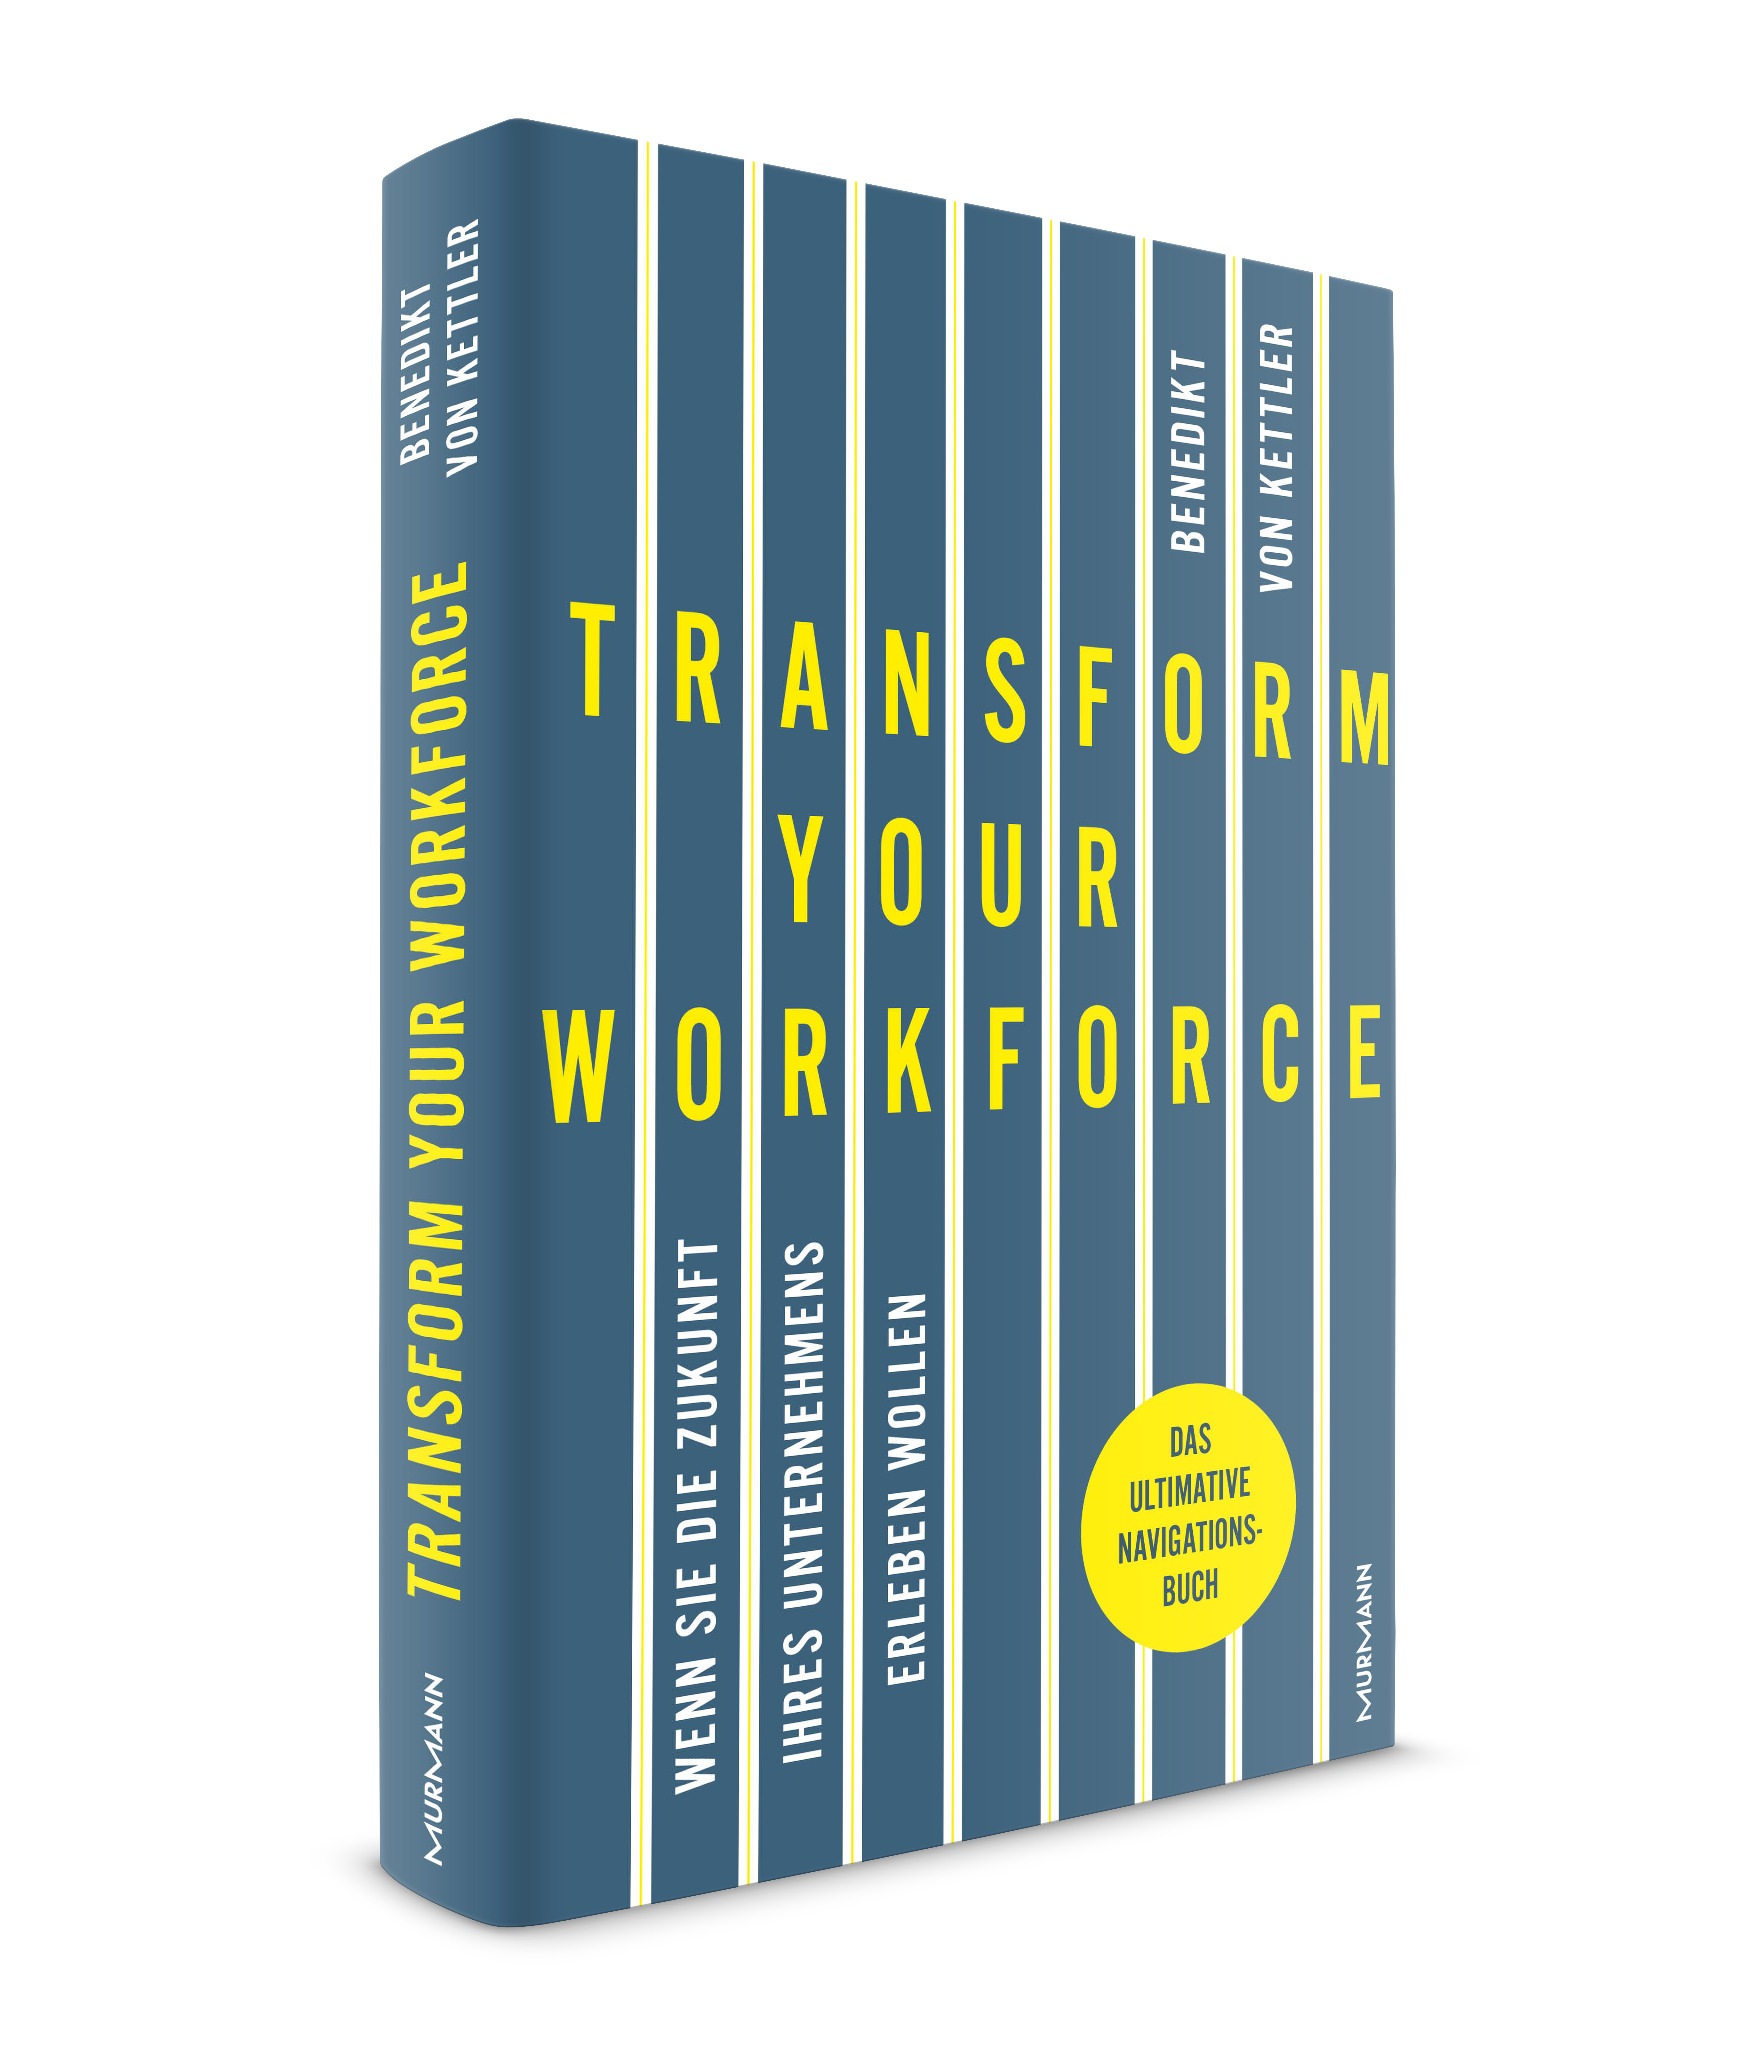 *Transform your Workforce! / Benedikt von Kettler